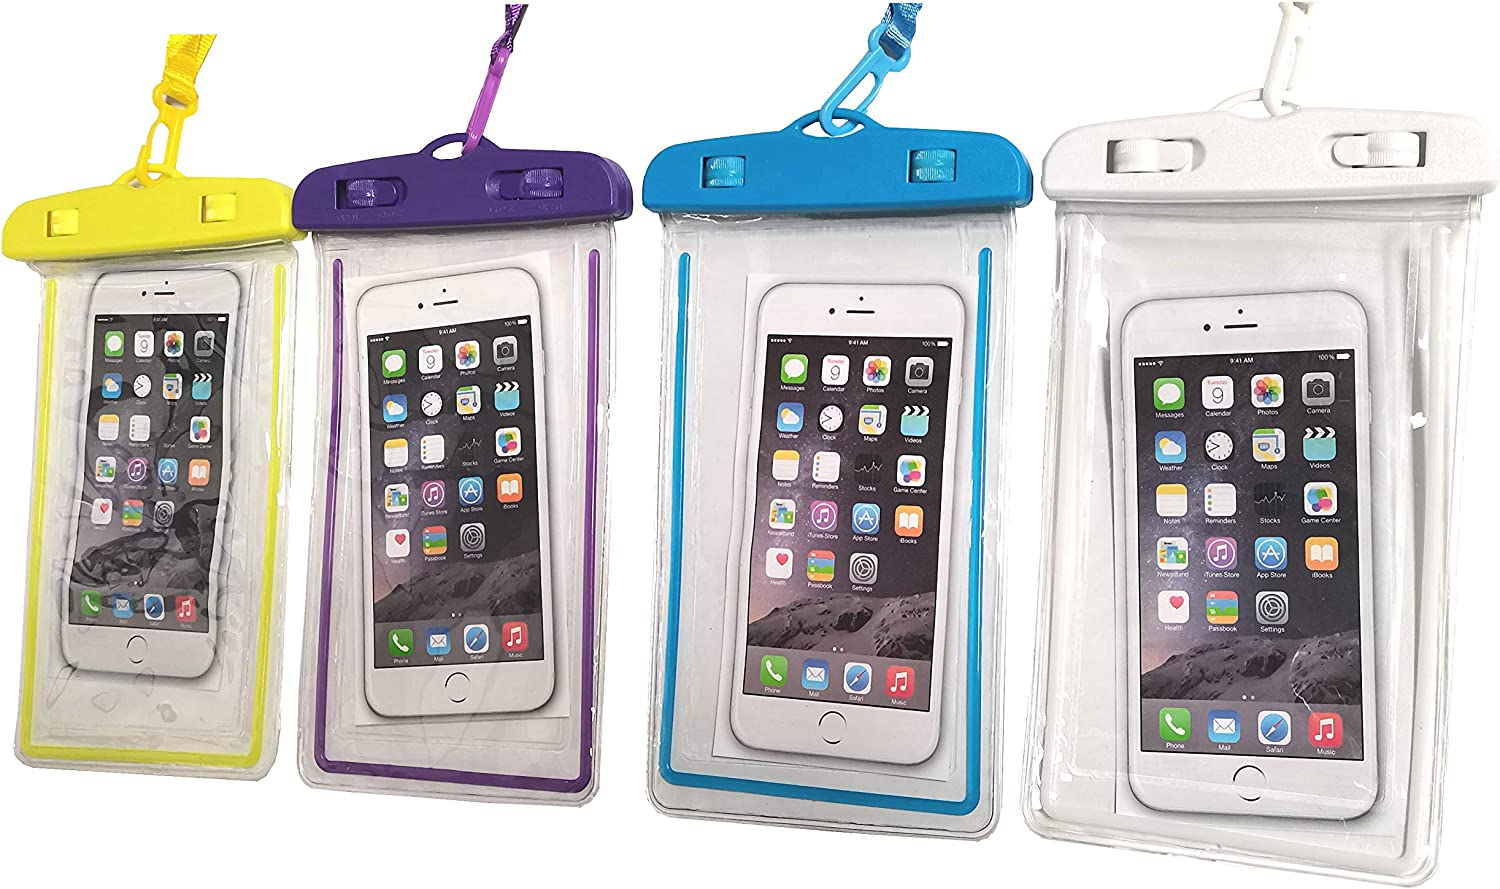 4 Packs Noctilucous Universal Waterproof Pouch Cellphone Dry Bag Underwater Case for Swimming, Boating, Fishing, Skiing, Rafting ,Beach Snorkeling etc (White+Purple+Yellow+Blue)